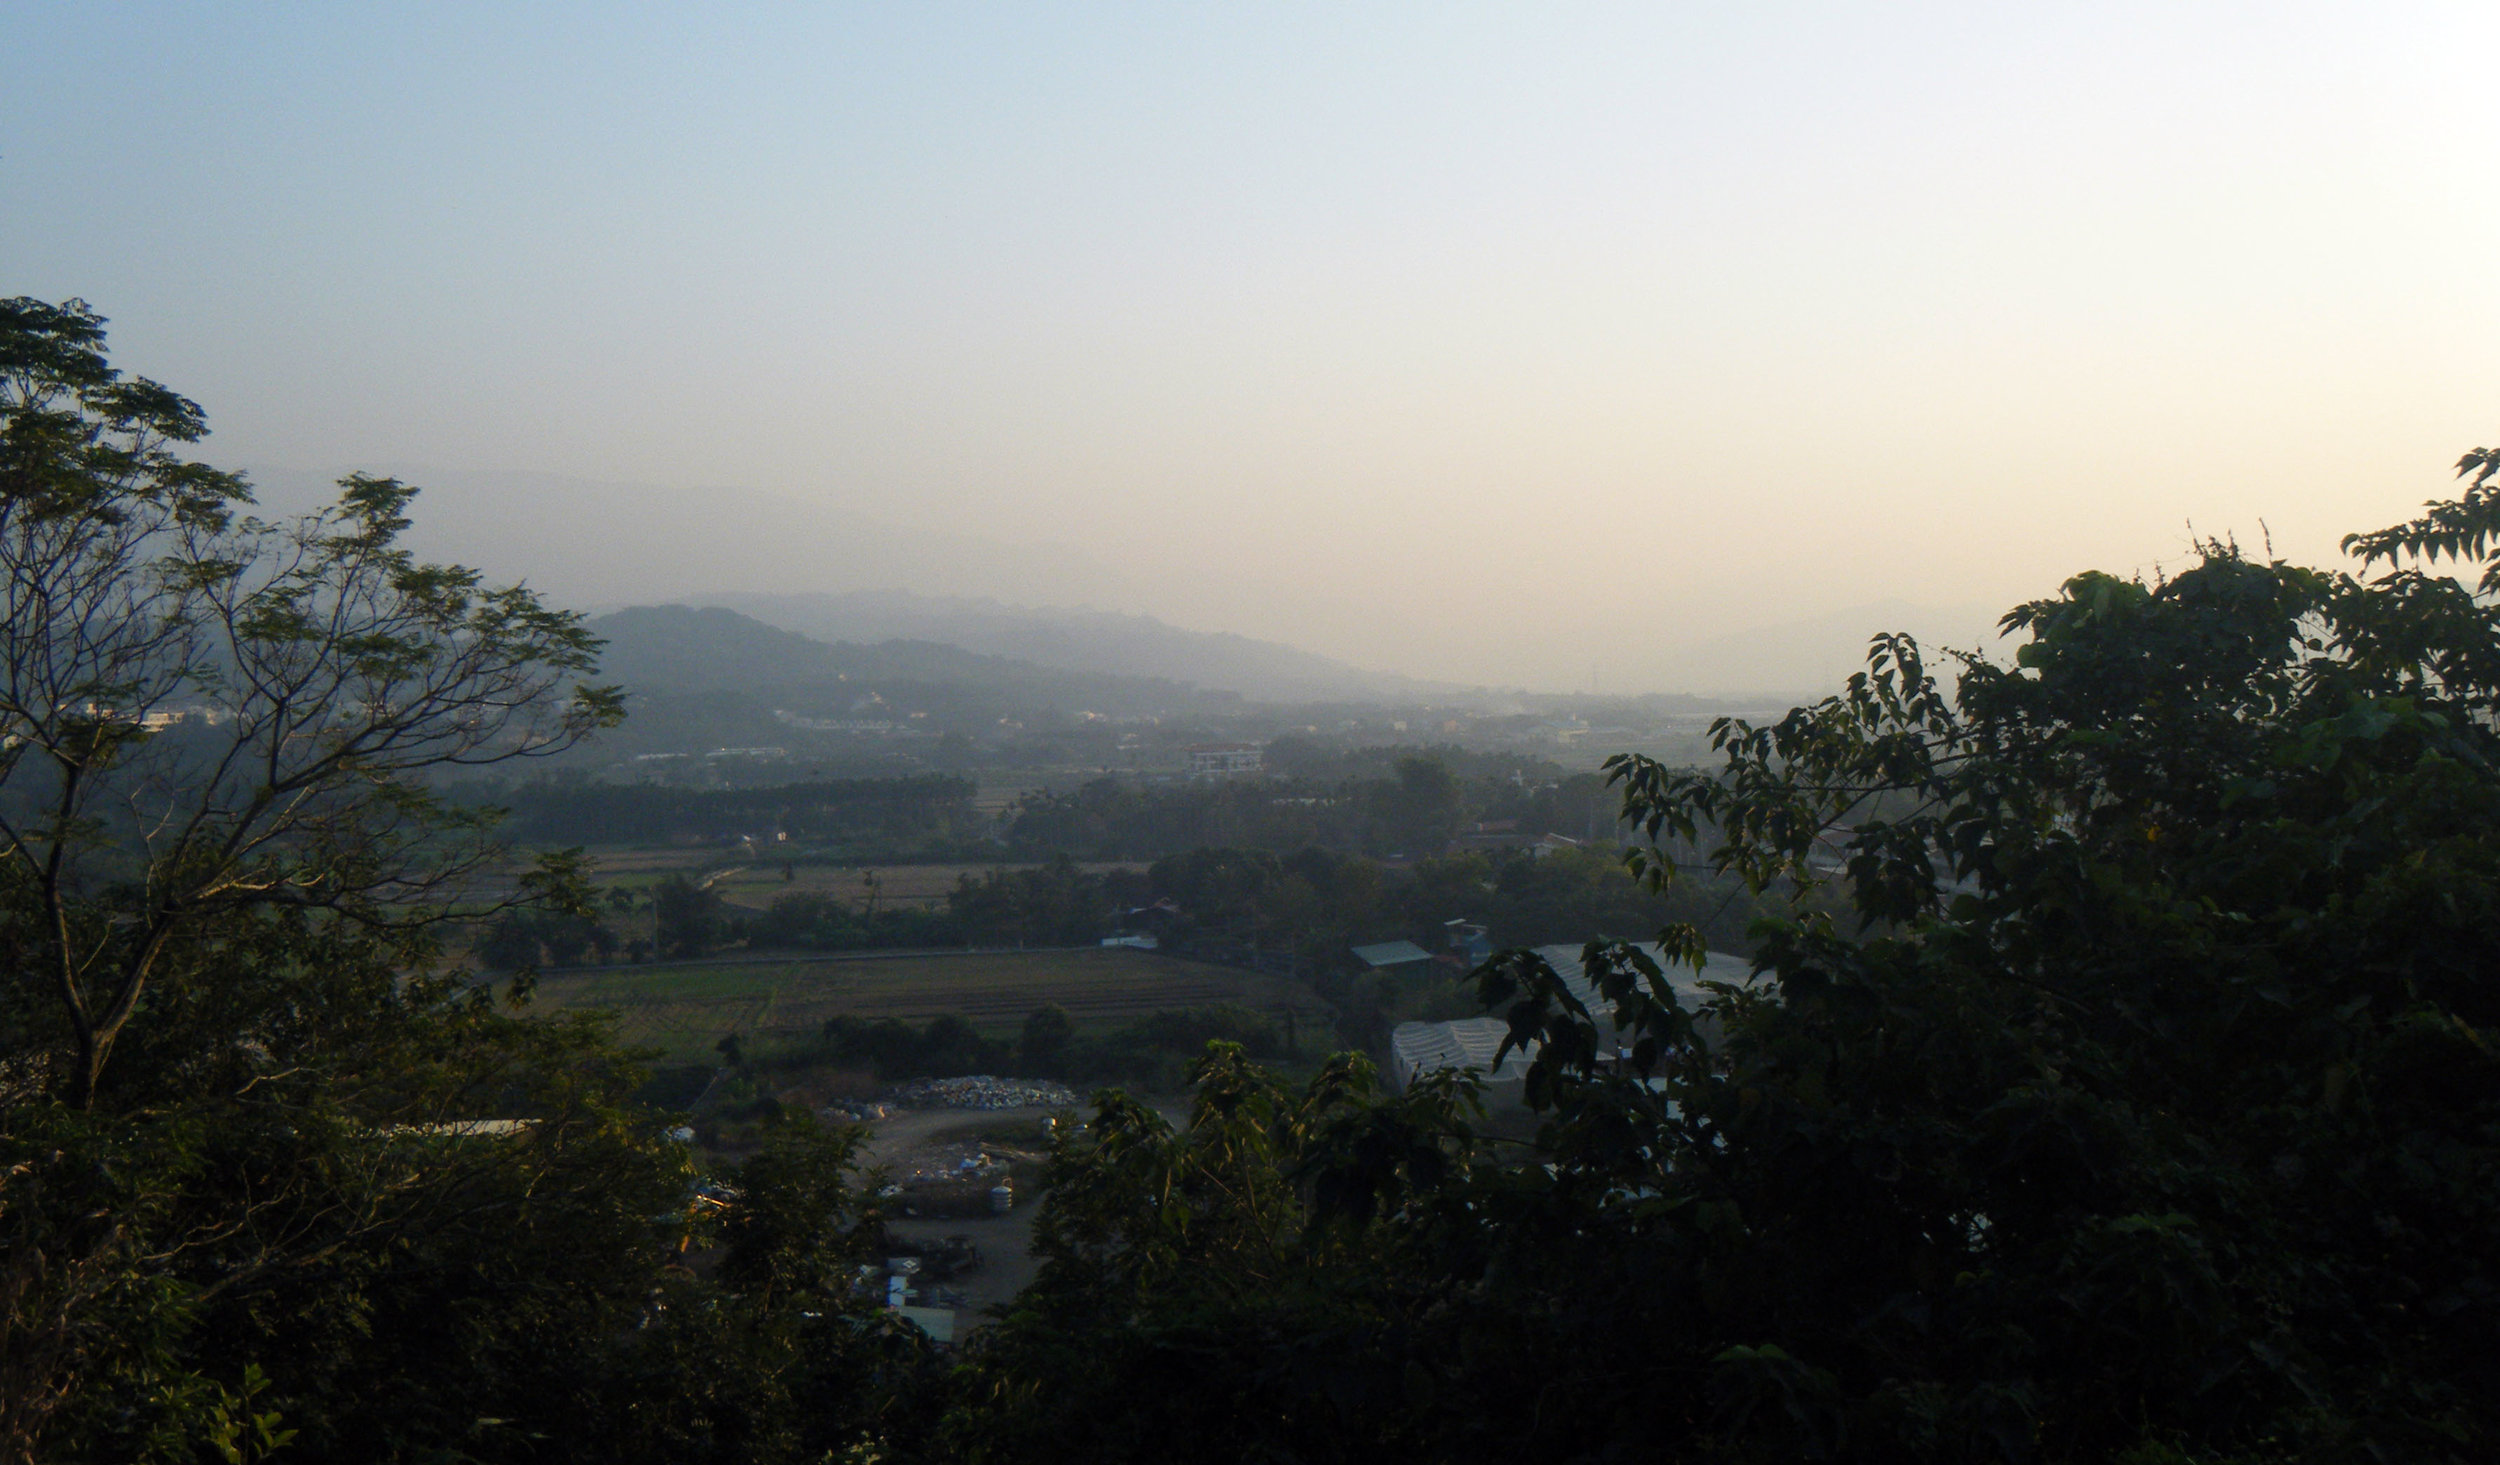 sunset at Jhushan.jpg